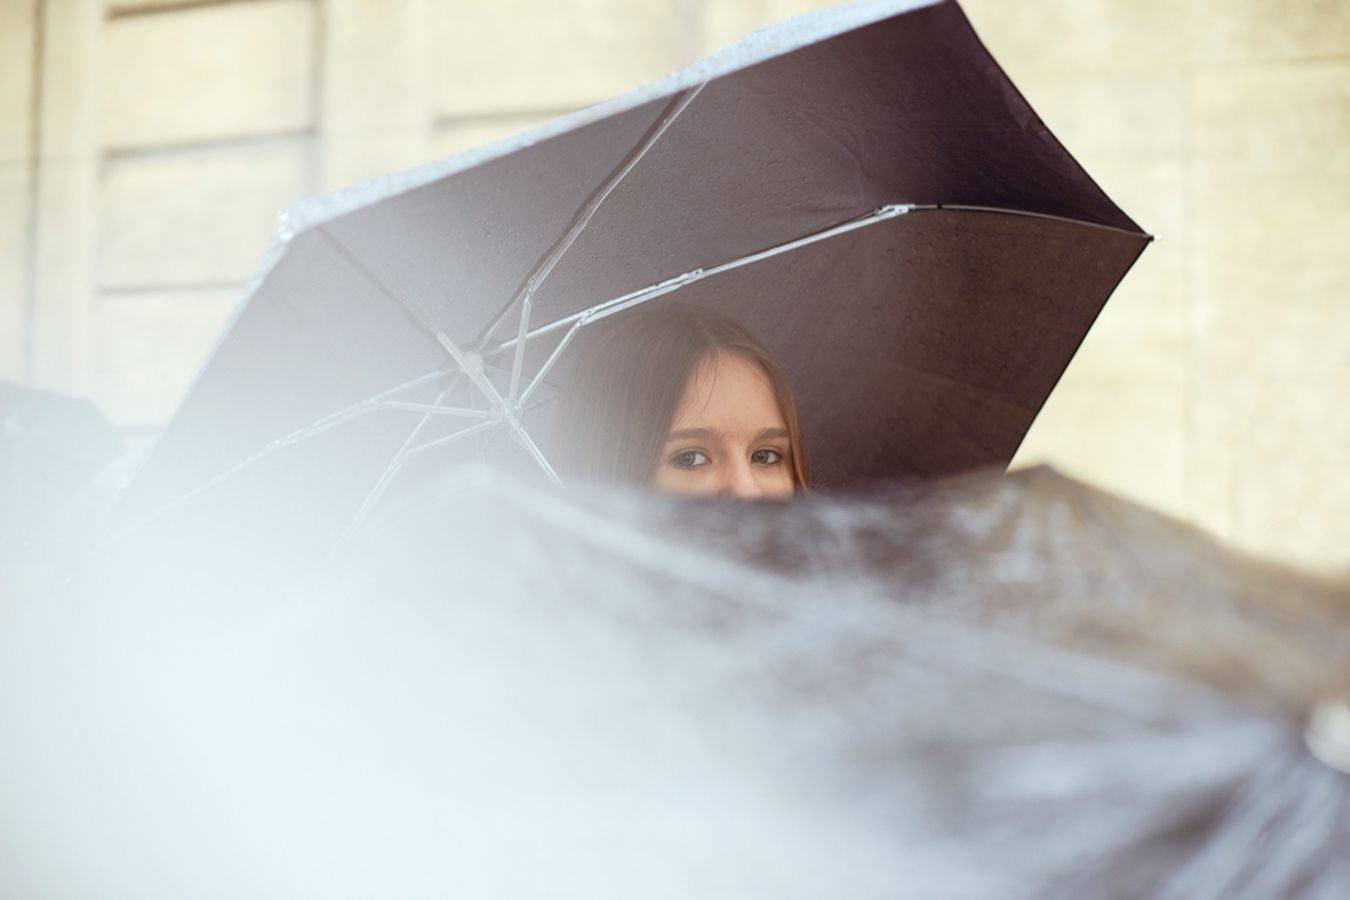 THE PARISIAN WEATHER'S IMPACT ON FASHION BY NADA DIANE FRIDI, PARIS http://theforumist.com/talking-about-the-weather/